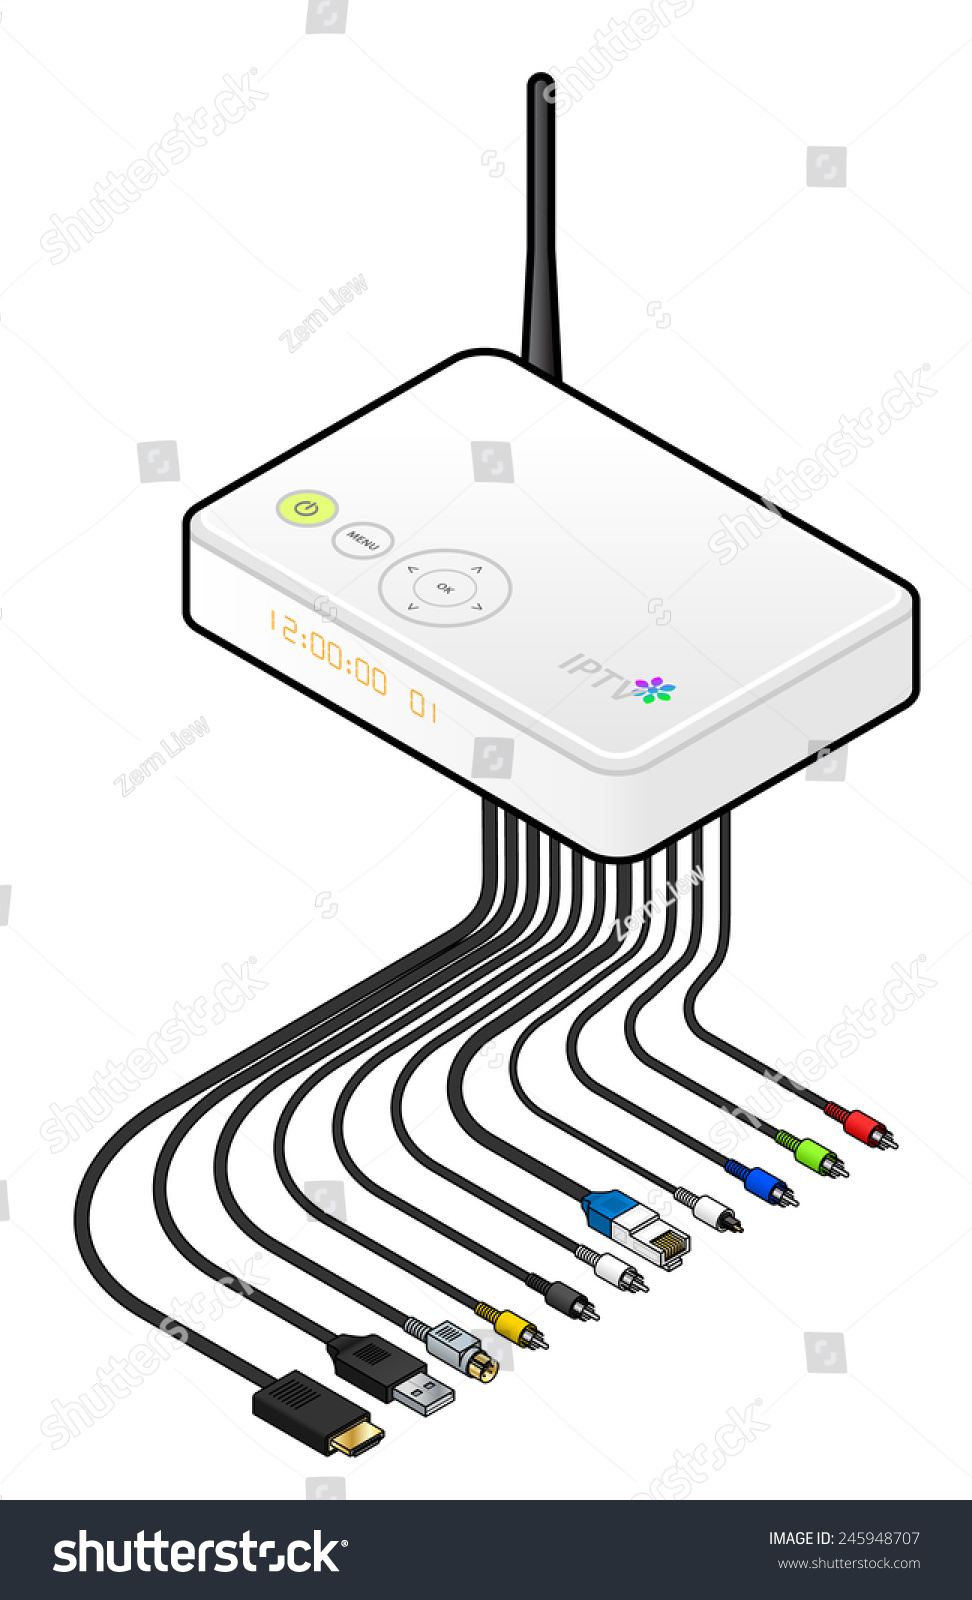 Large White Iptv Set Top Box Stock Vector Royalty Free 245948707 Wiring Diagram A Or Integrated Receiver Decoder With Cables Connectors And